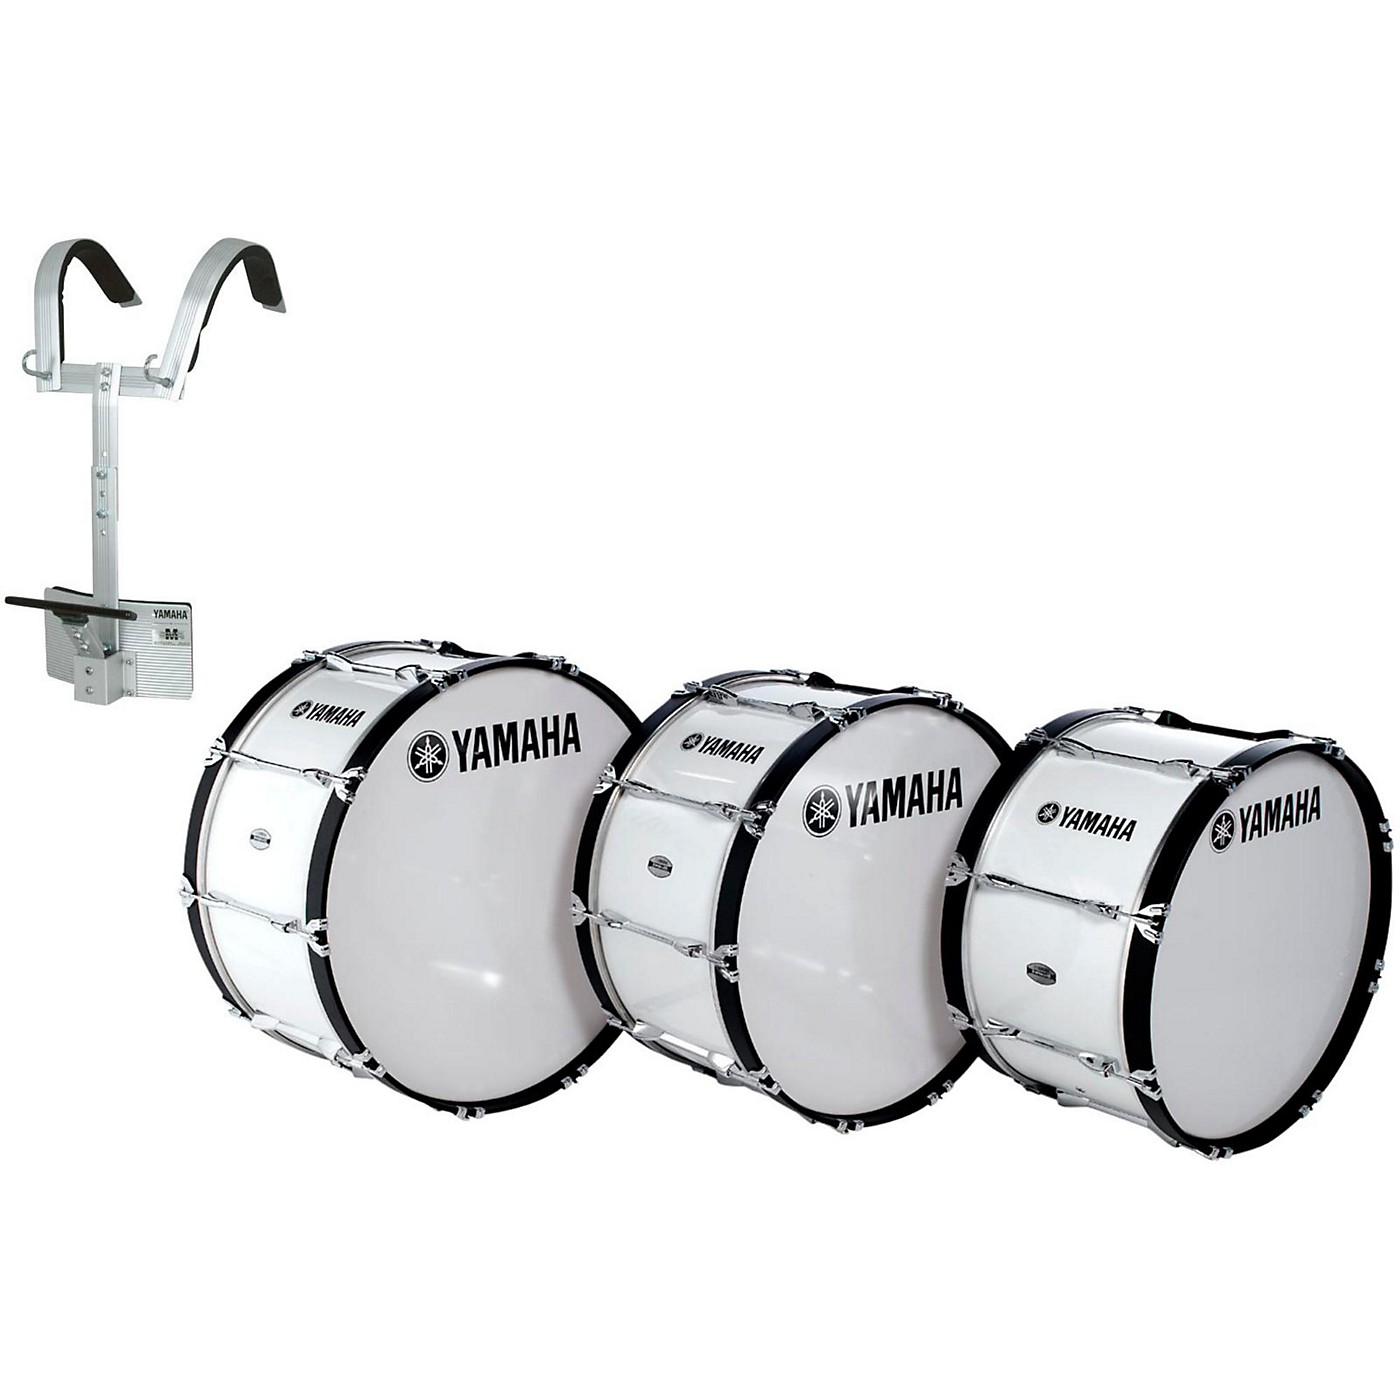 Yamaha Power-Lite Marching Bass Drum with Carrier thumbnail